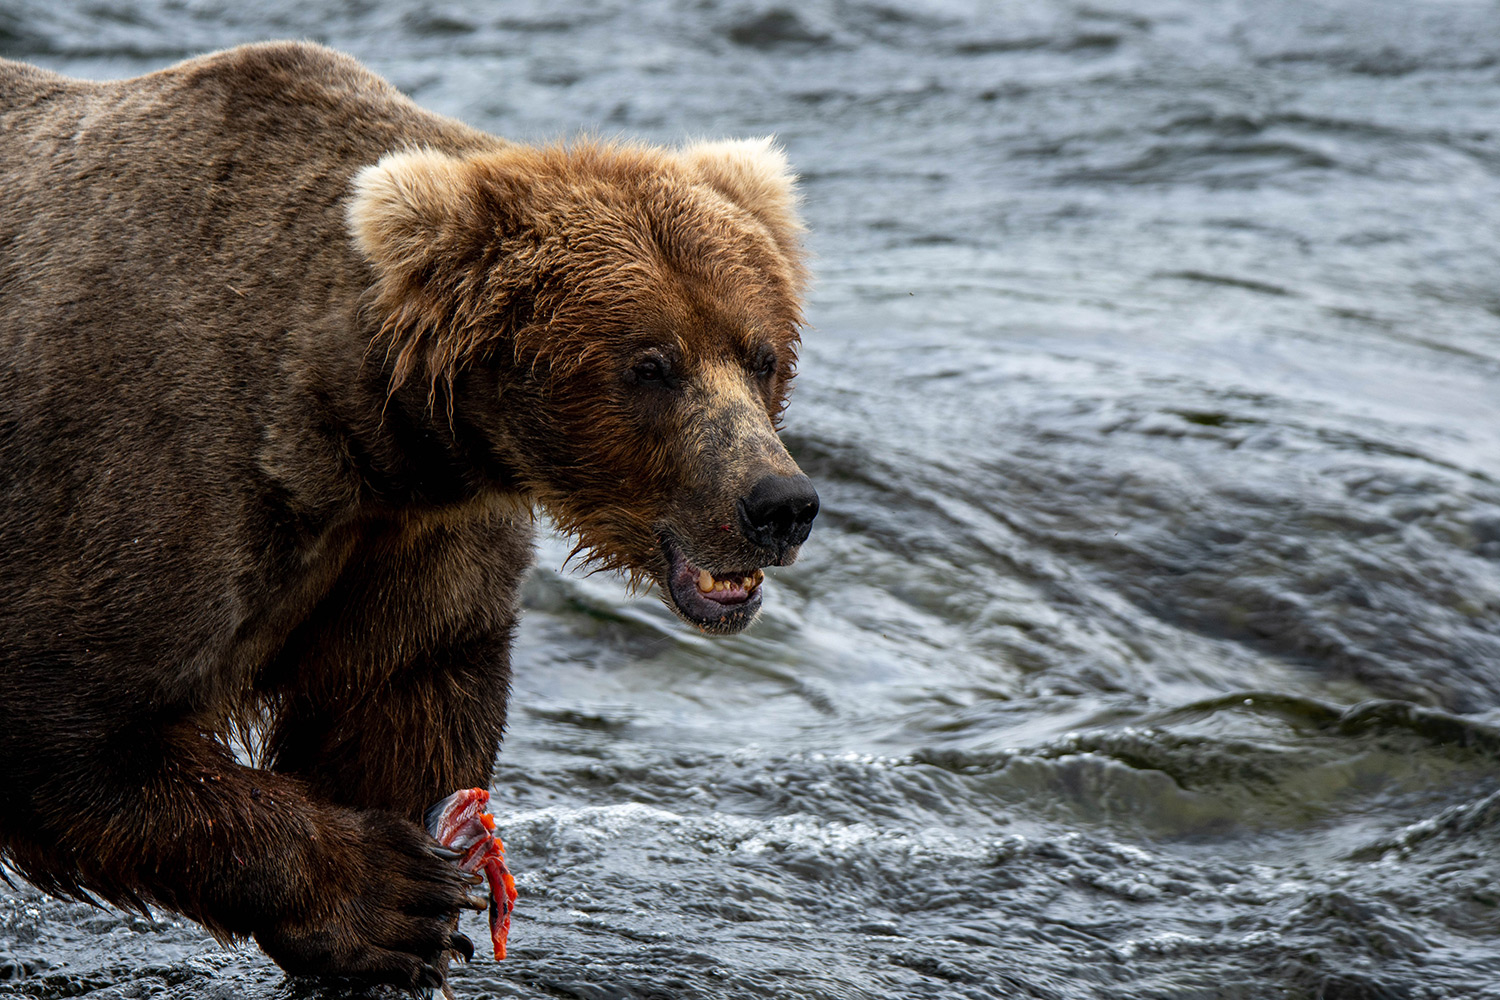 11 Tips for Photographing Bears in Alaska